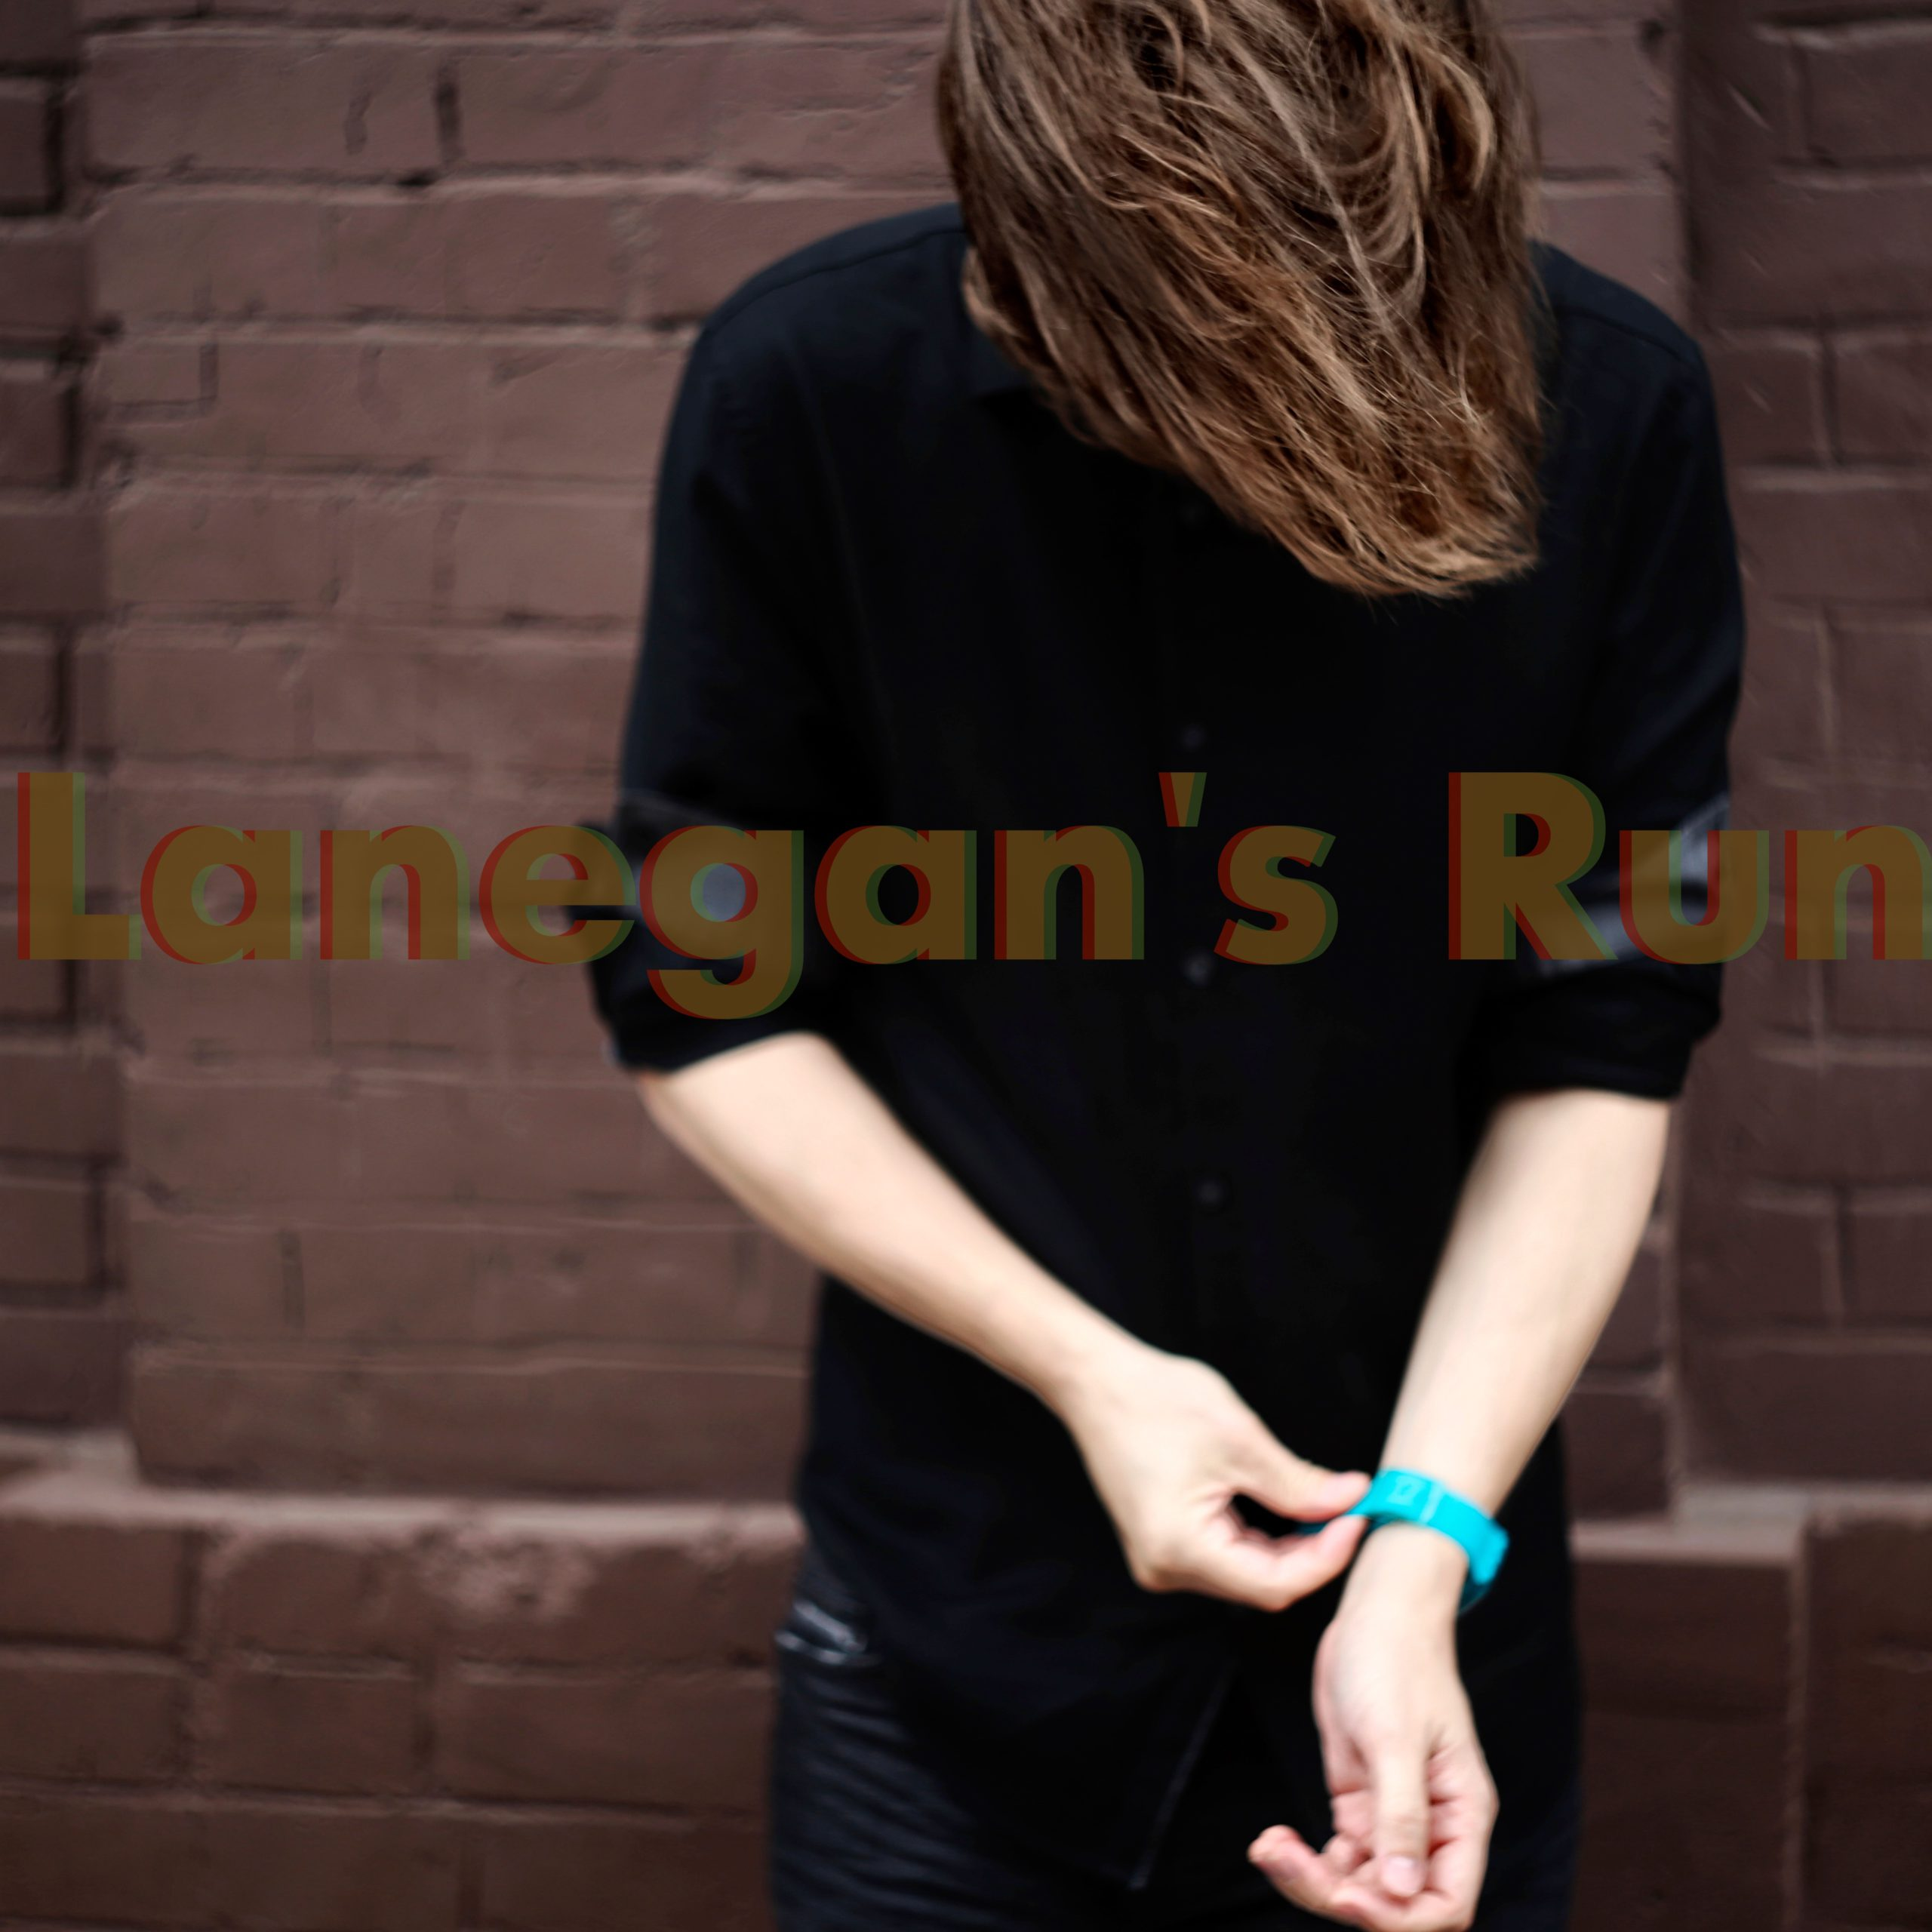 Maguta Lanegan's Run EP cover